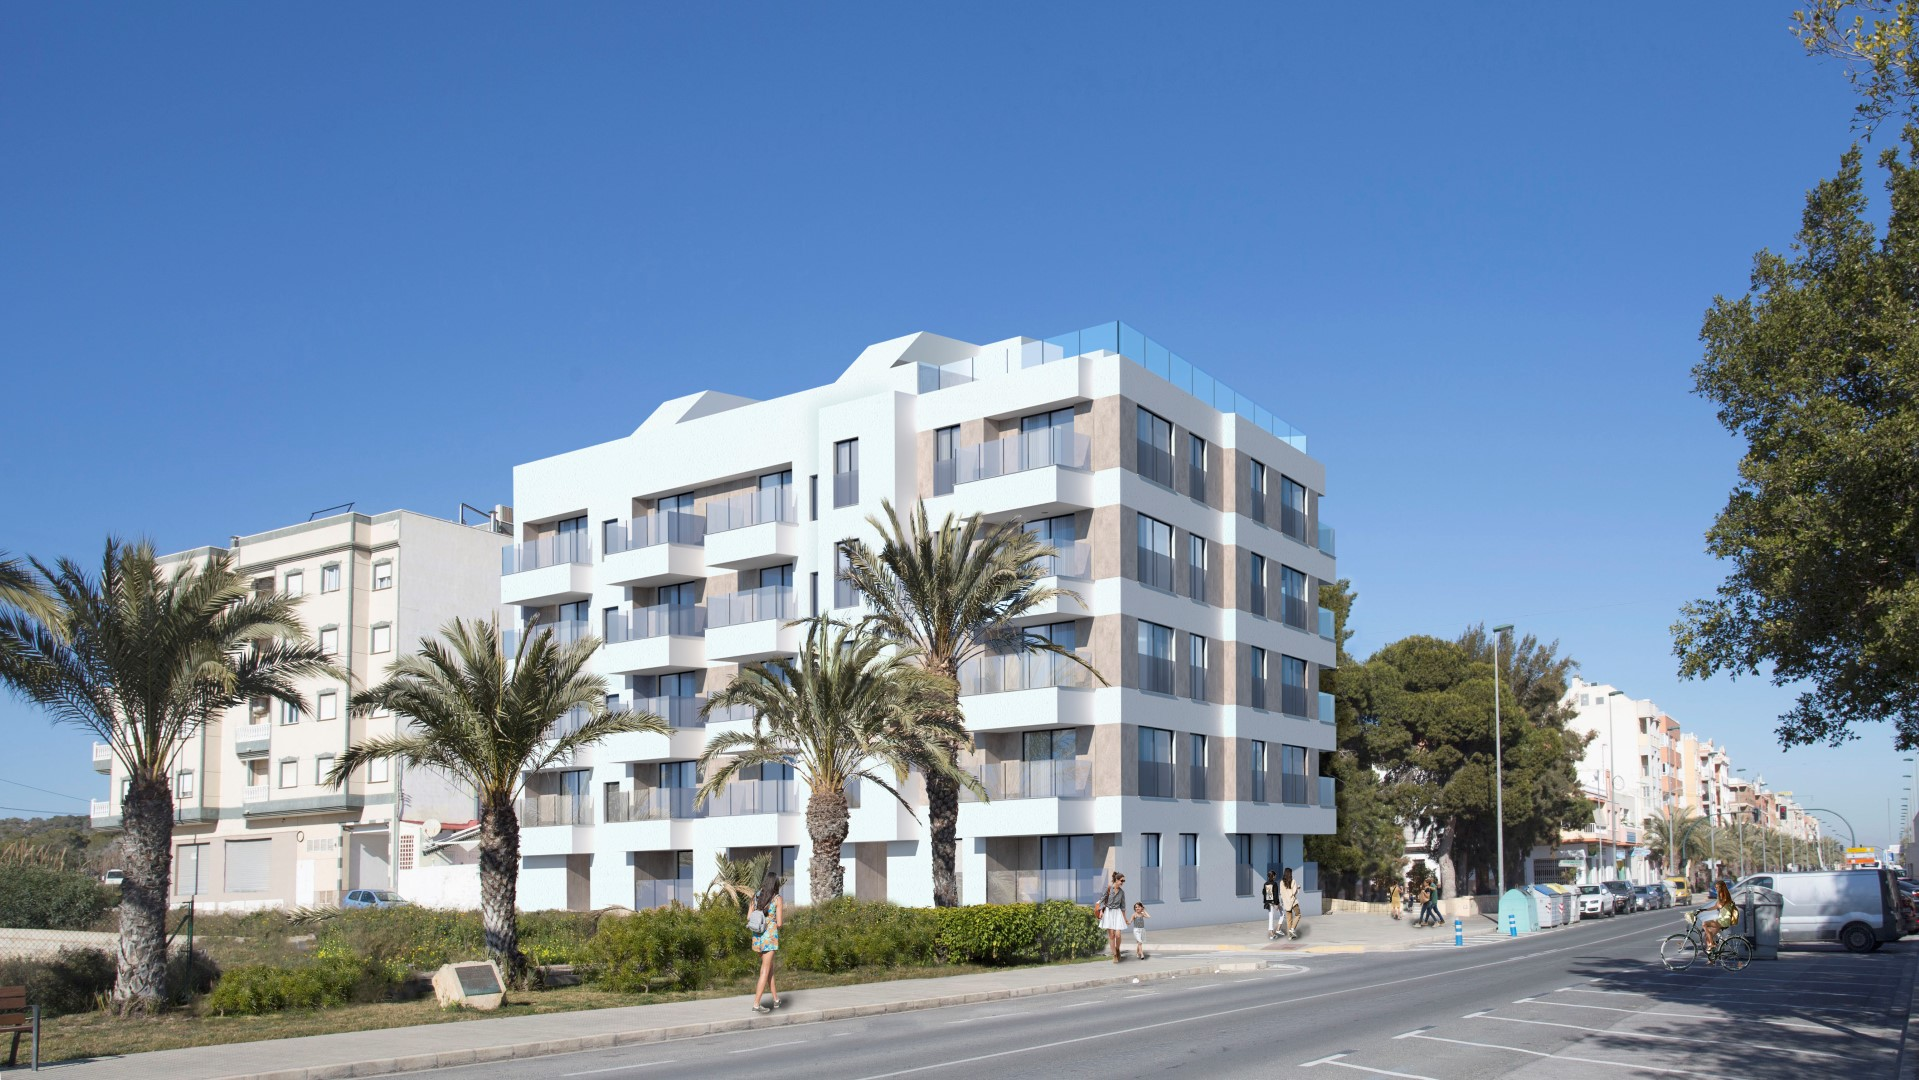 NAYA architects alicante amistad building in la marina exterior view